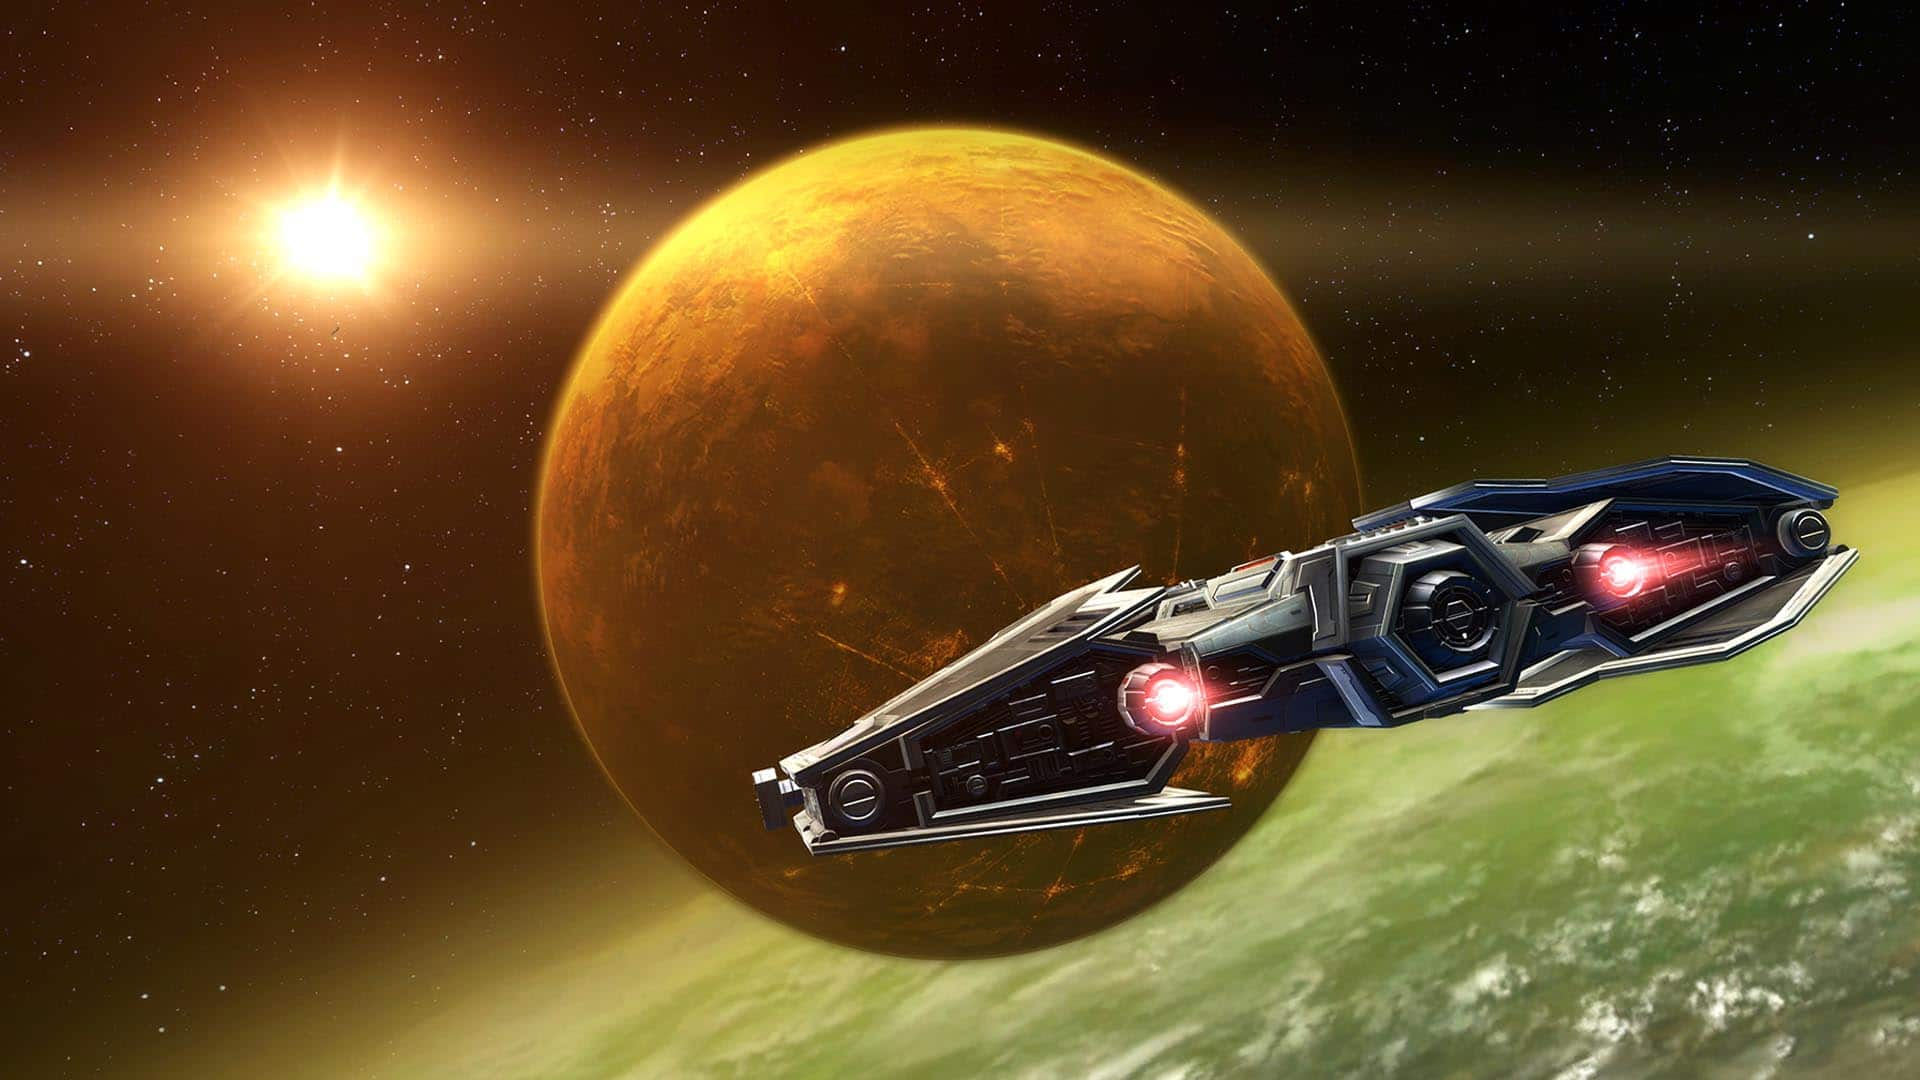 SWTOR Doppel-EP-Event mit Patch 6.1.1